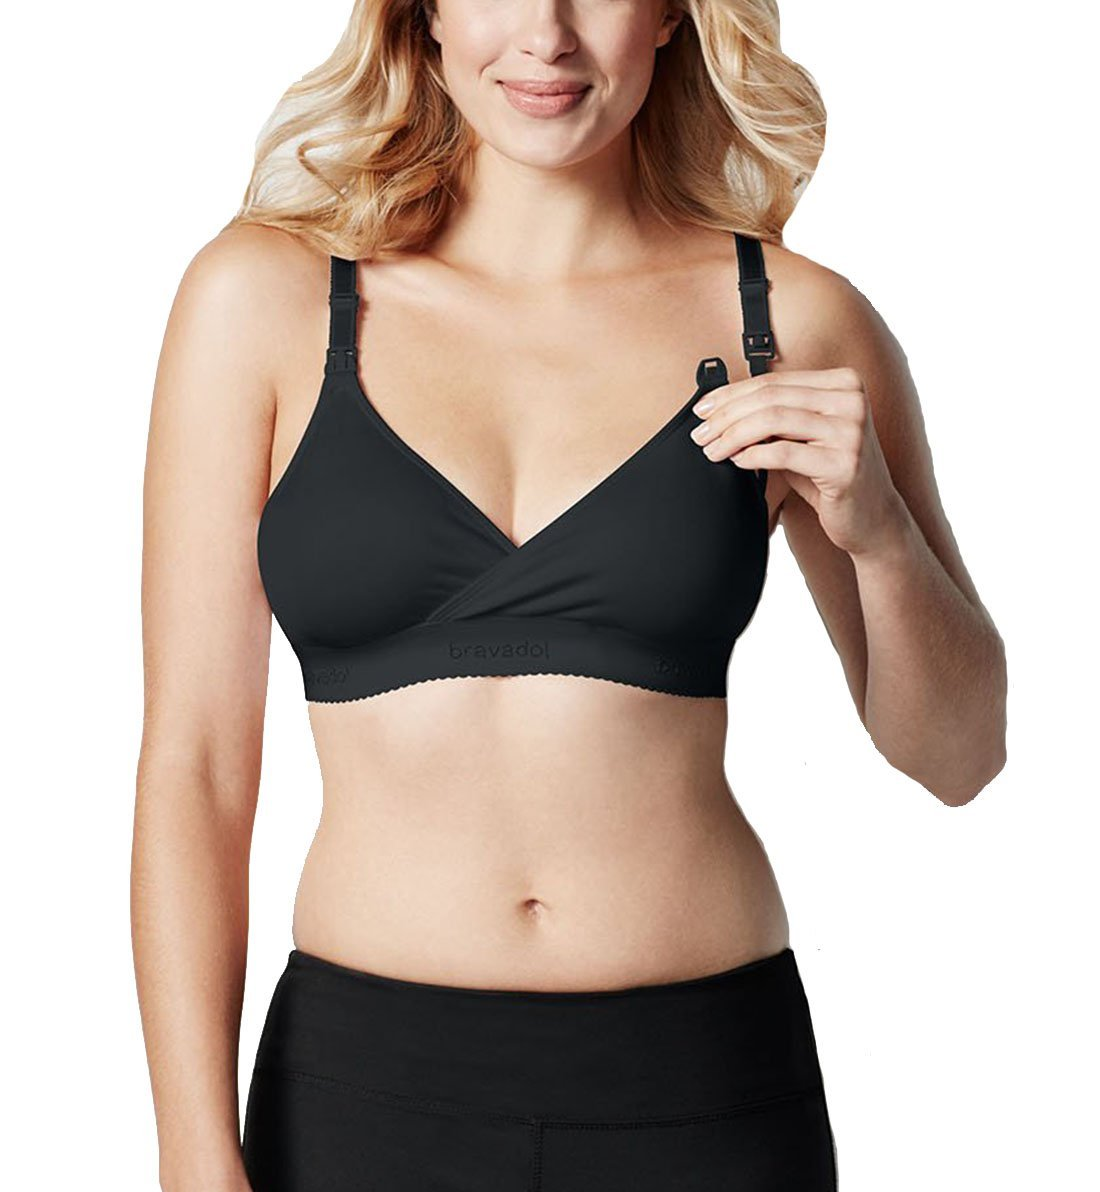 ad90a88b38aff Bravado Original Nursing Bra Large - Black